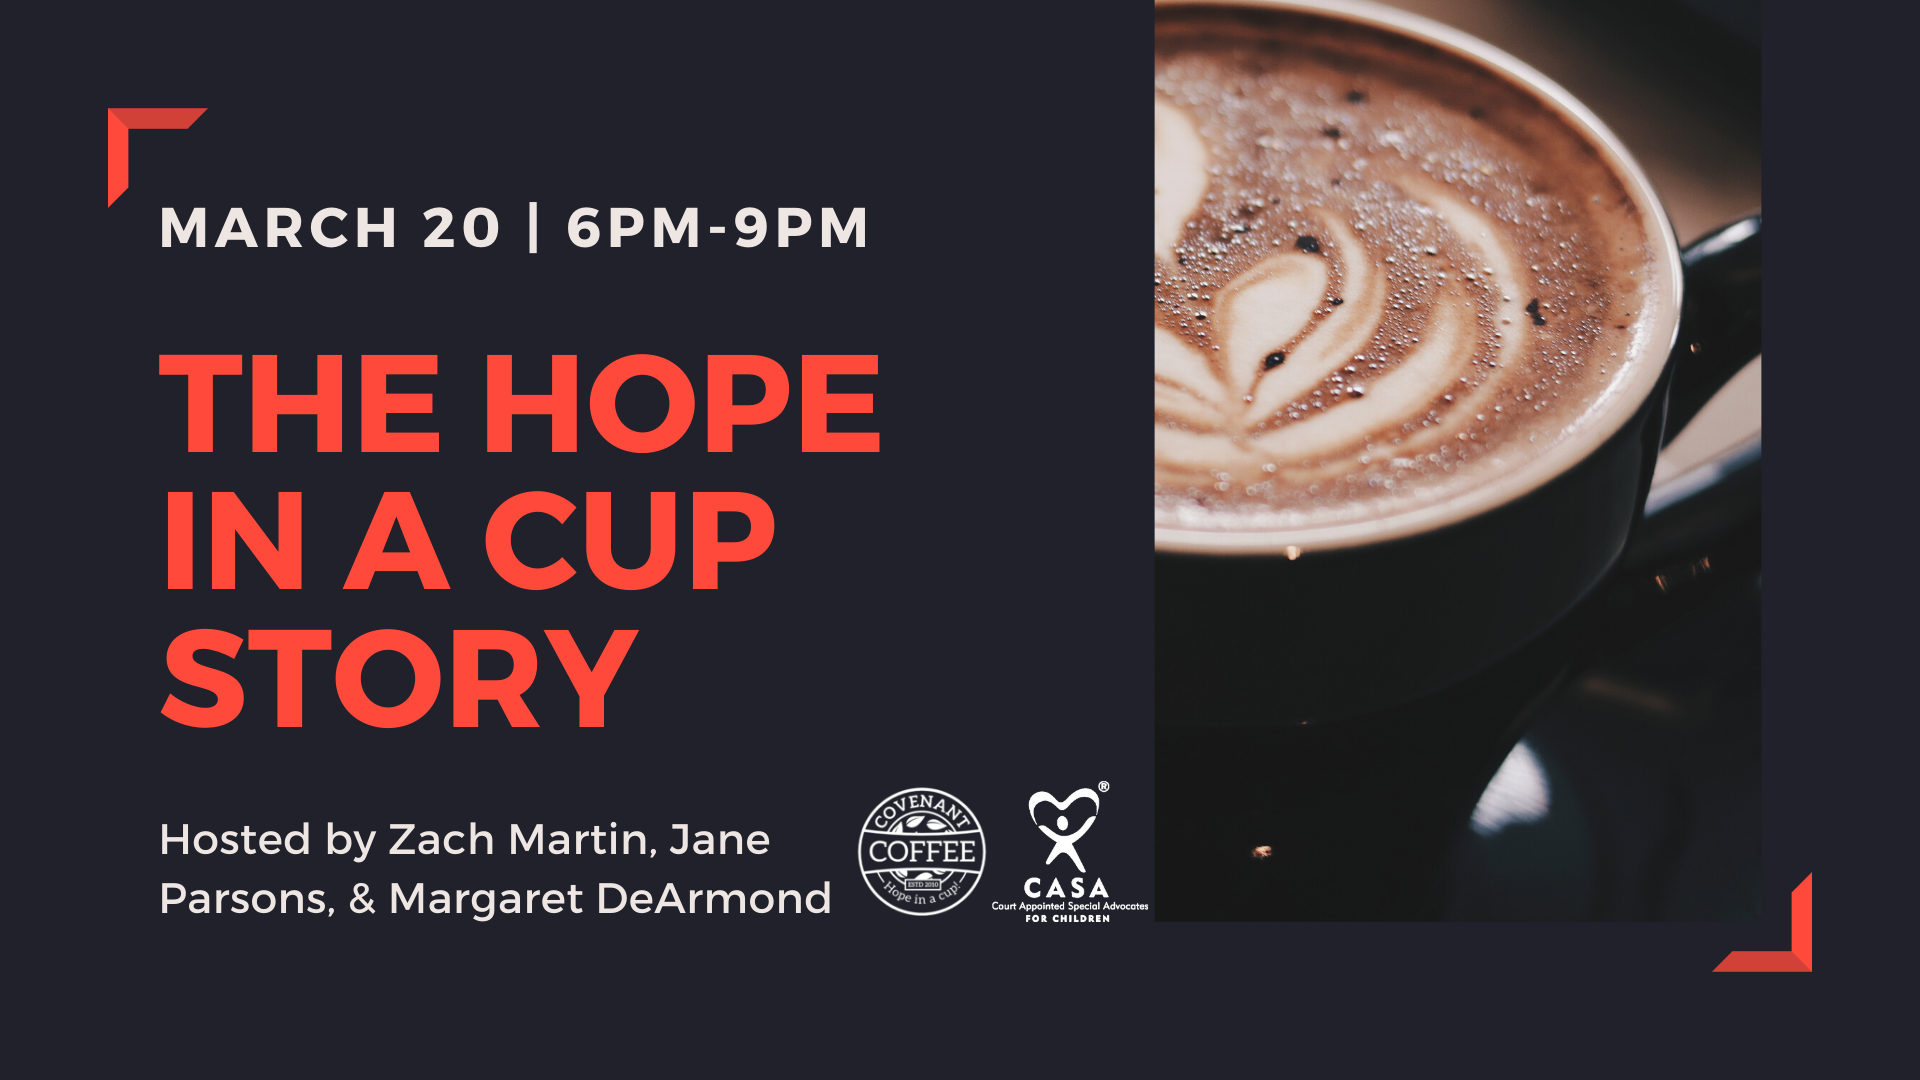 The Hope in a Cup Story